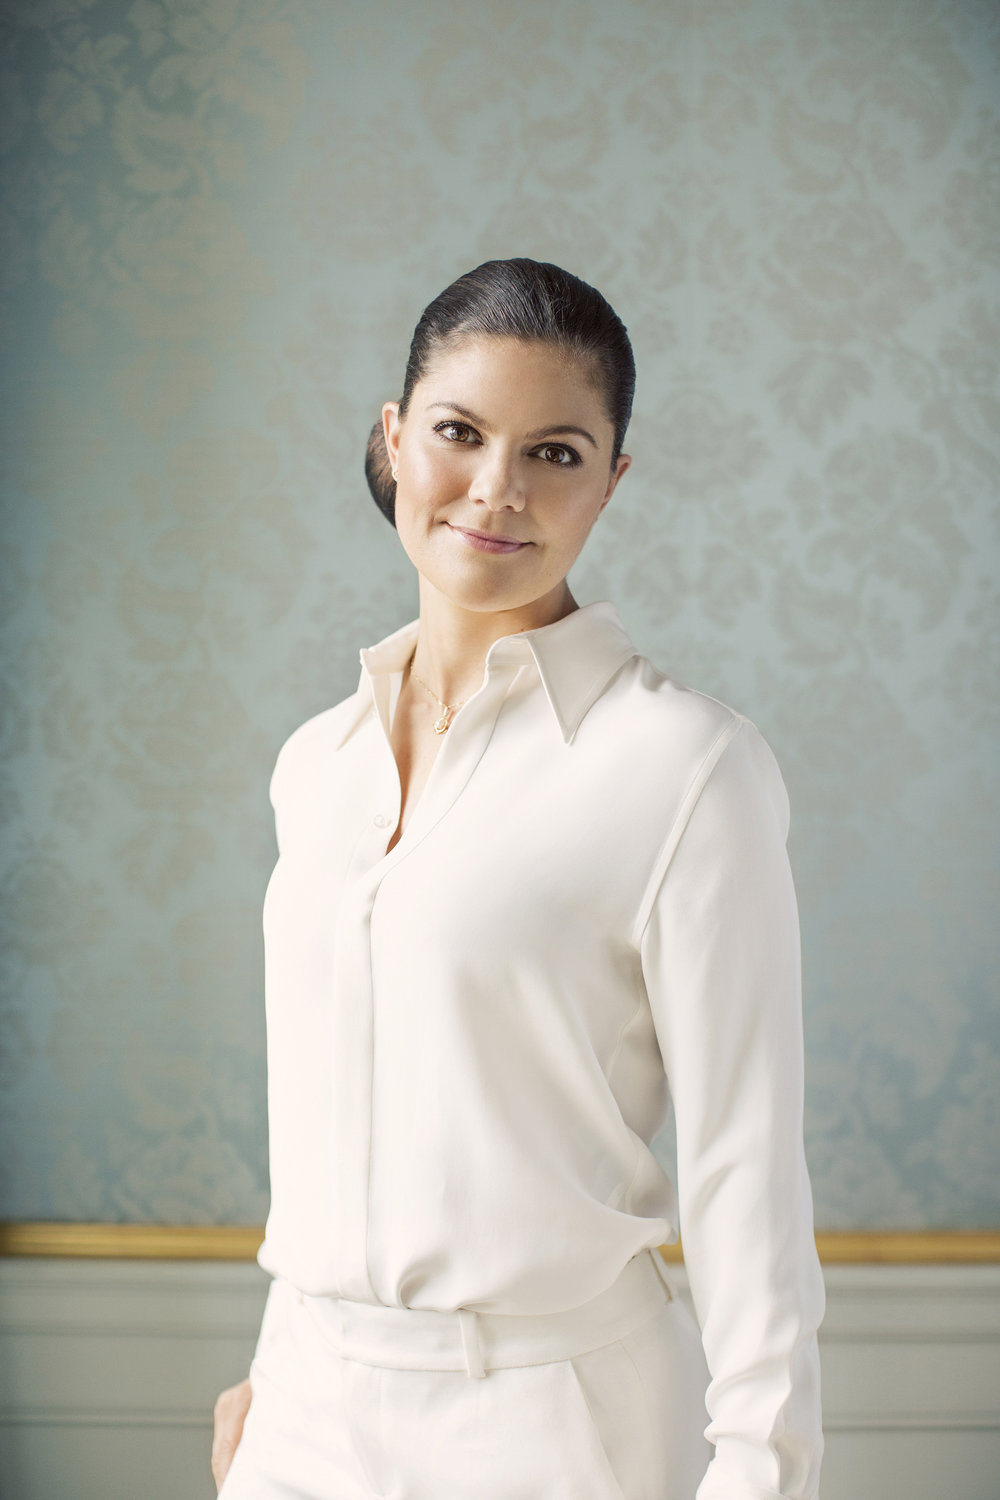 HRHCrownPrincessVictoria(3)photo_Erika_Gerdemark_Royalcourt_Sweden.jpg